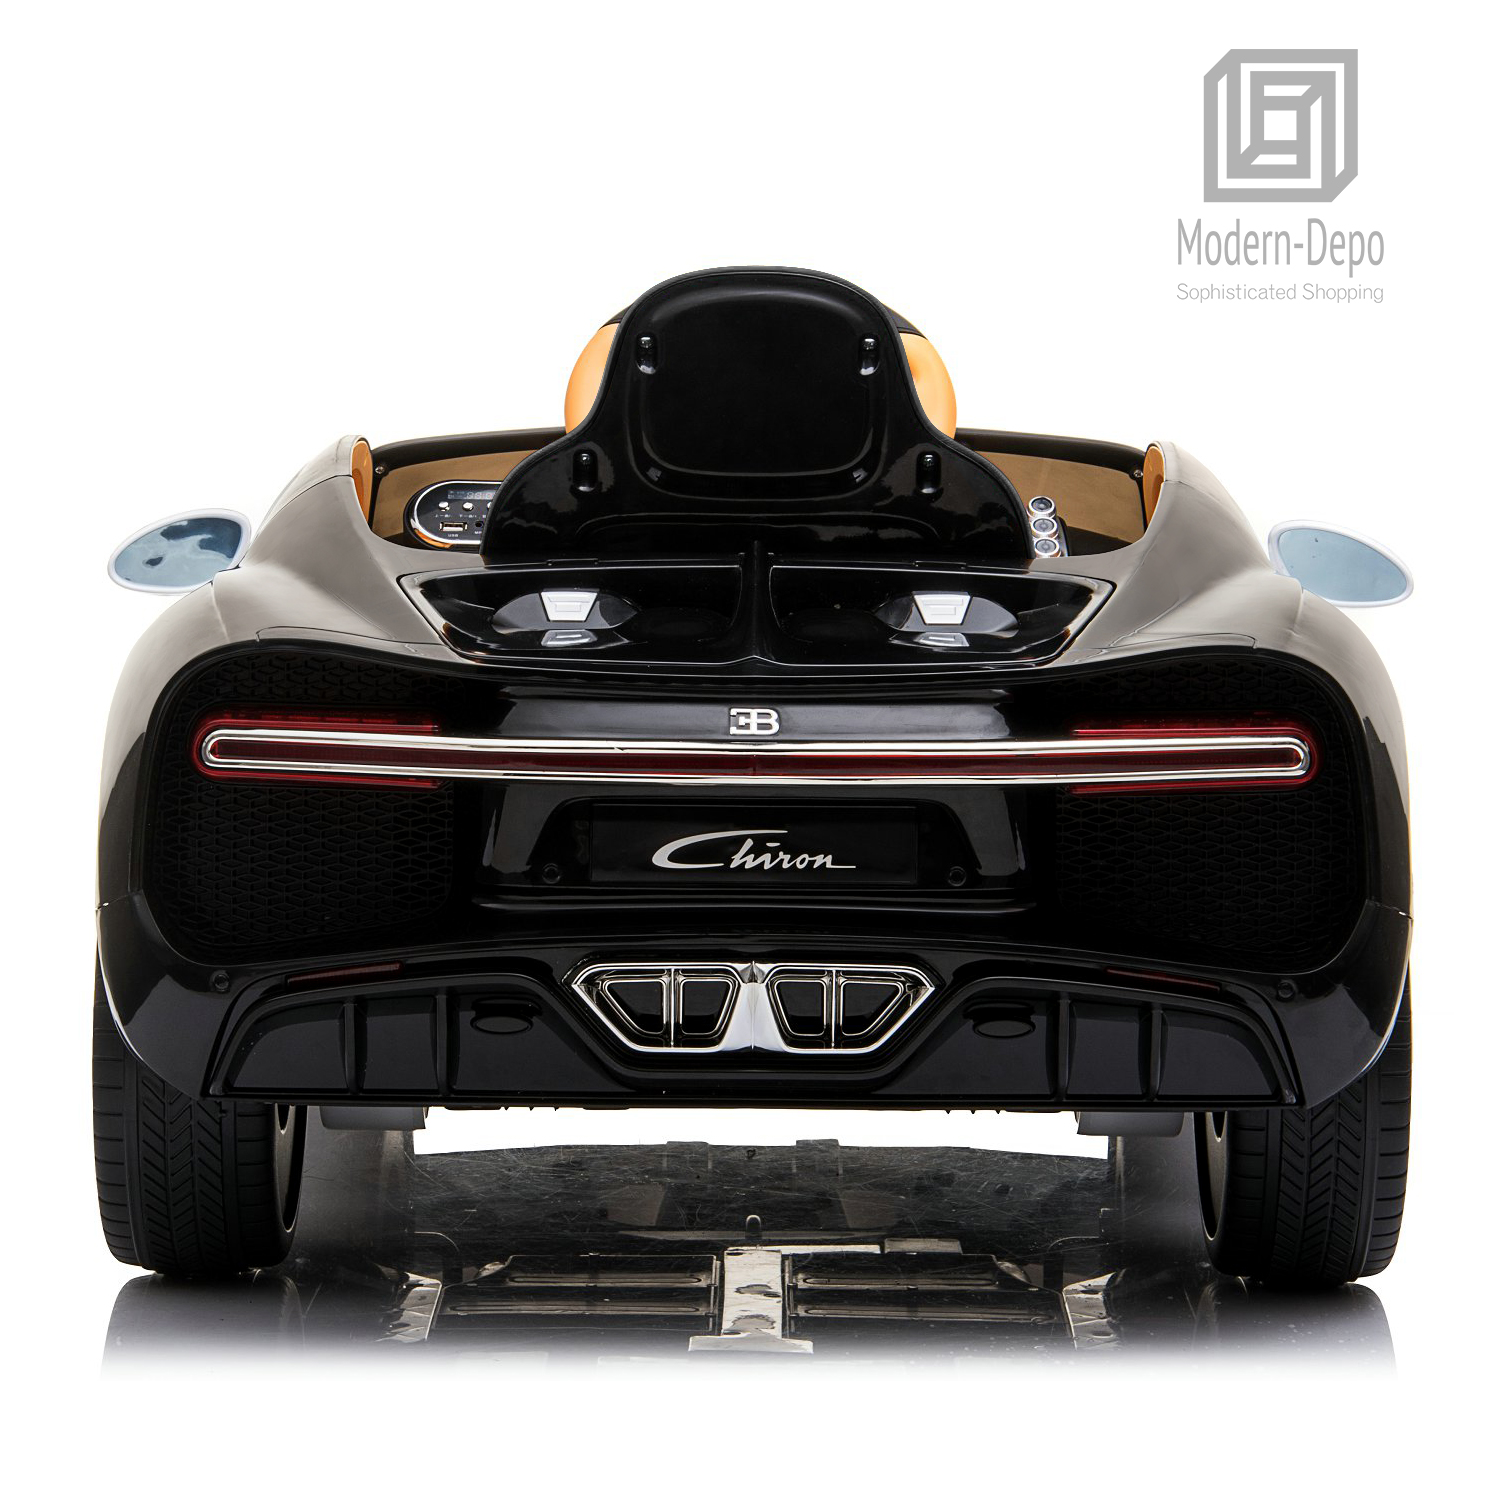 Bugatti-Chiron-12V-Kids-Ride-On-Car-with-Remote-Control-High-Speed-Motor miniature 40